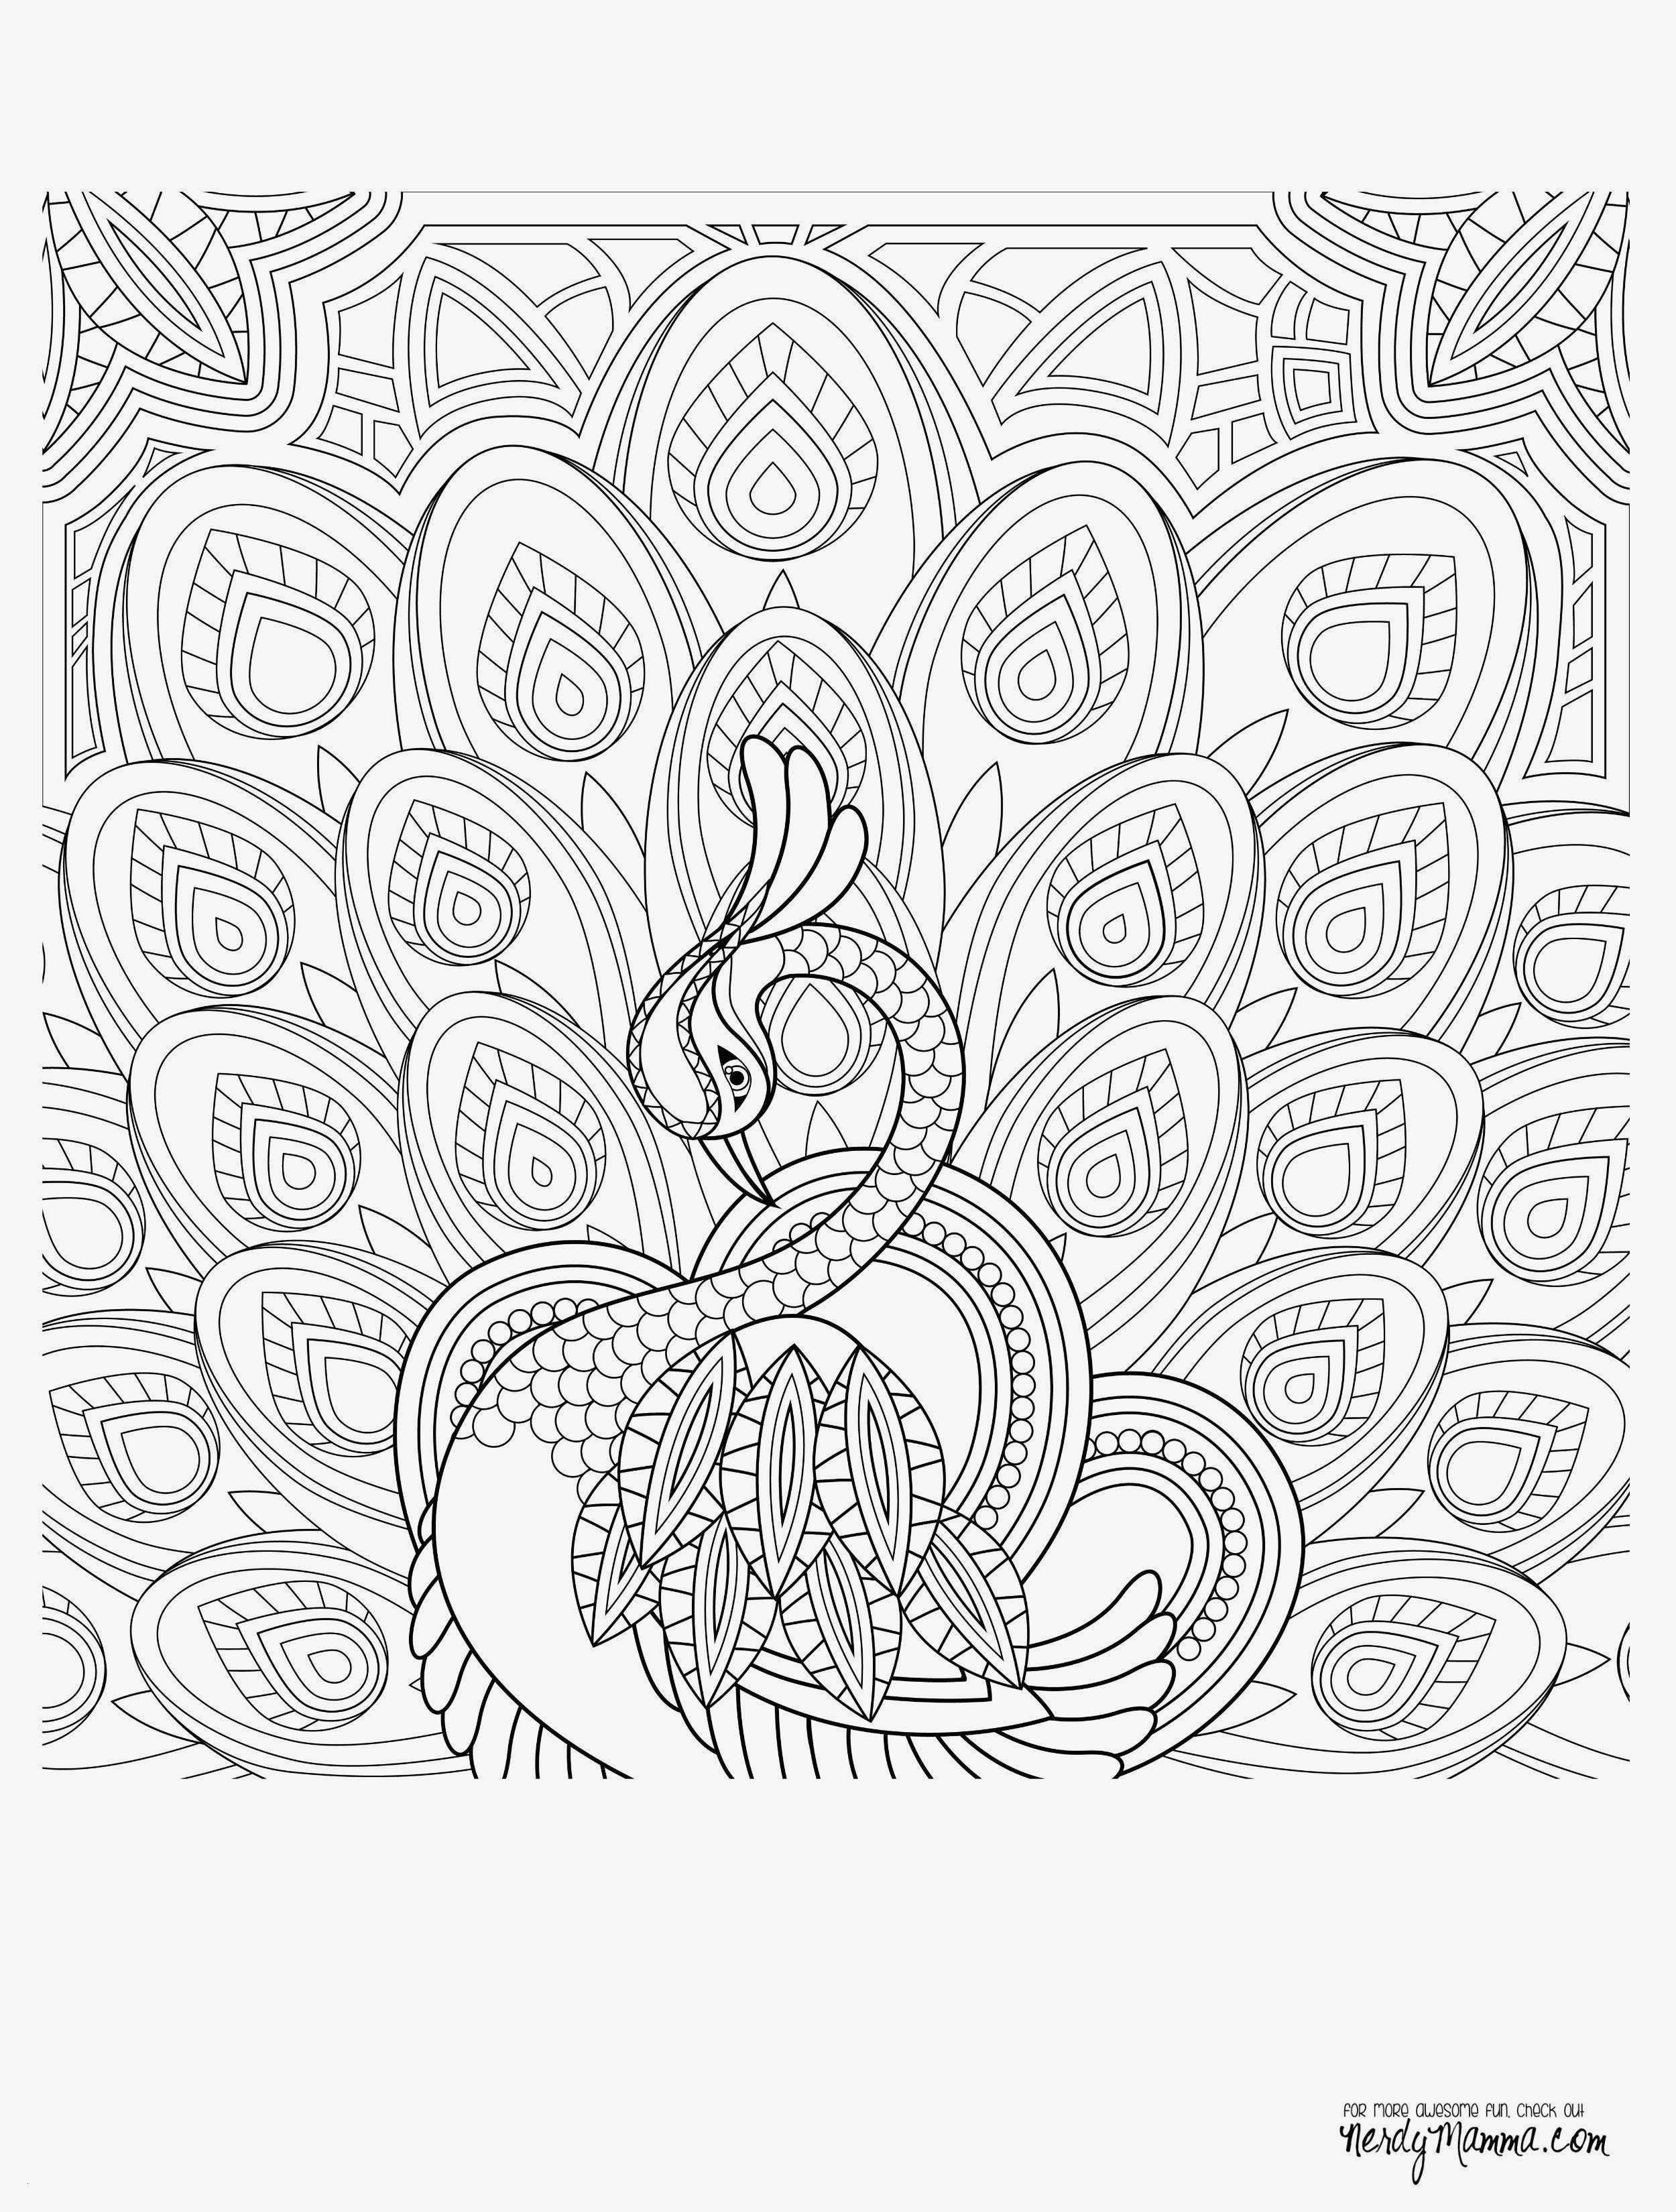 Usa Coloring Pages Usa Coloring Pages Lovely Coloring Page An Animal Painting Lovely To